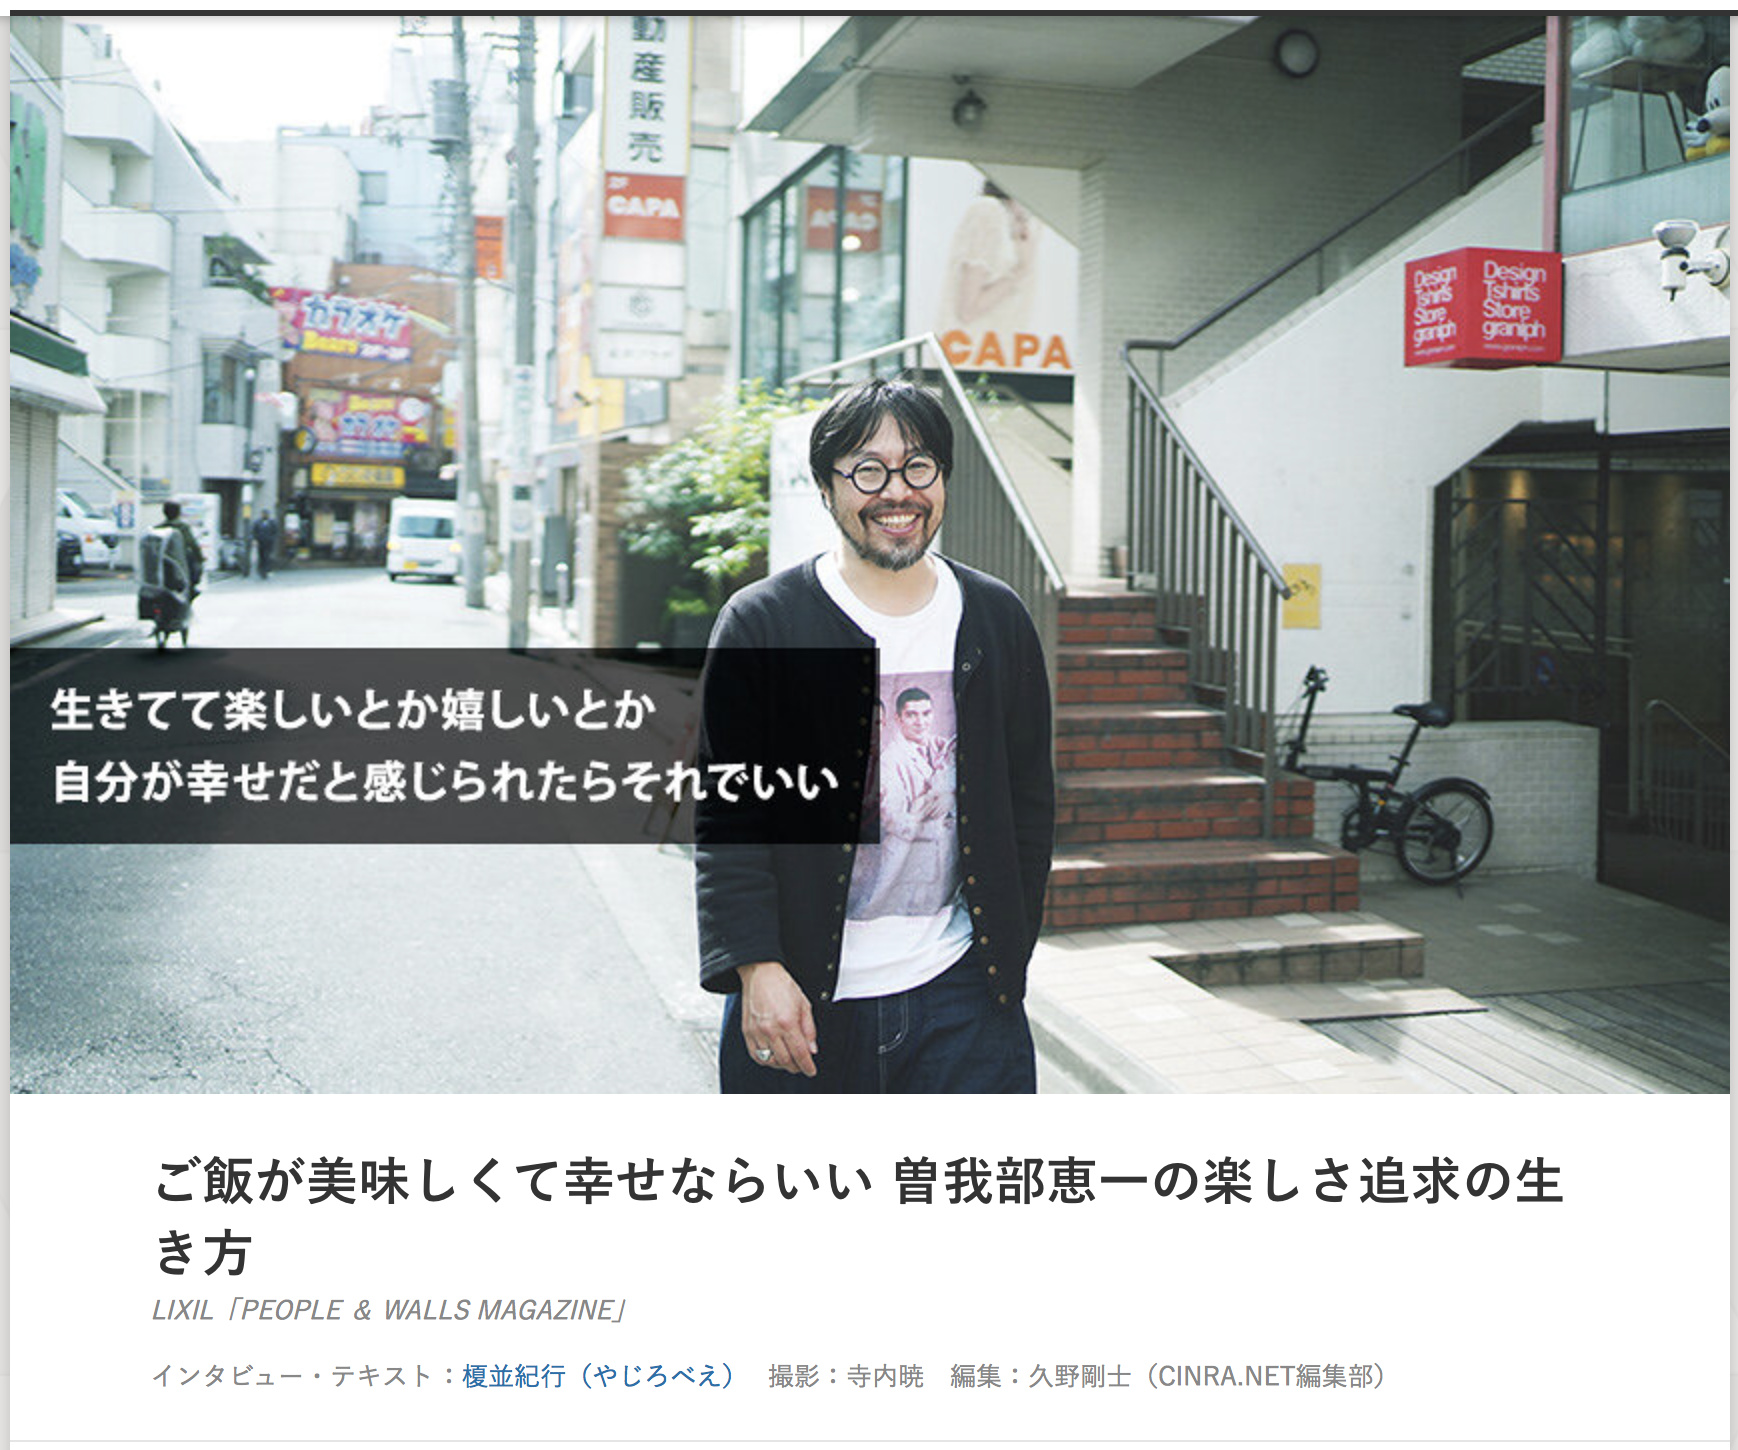 http://rose-records.jp/files/20201201170204.png